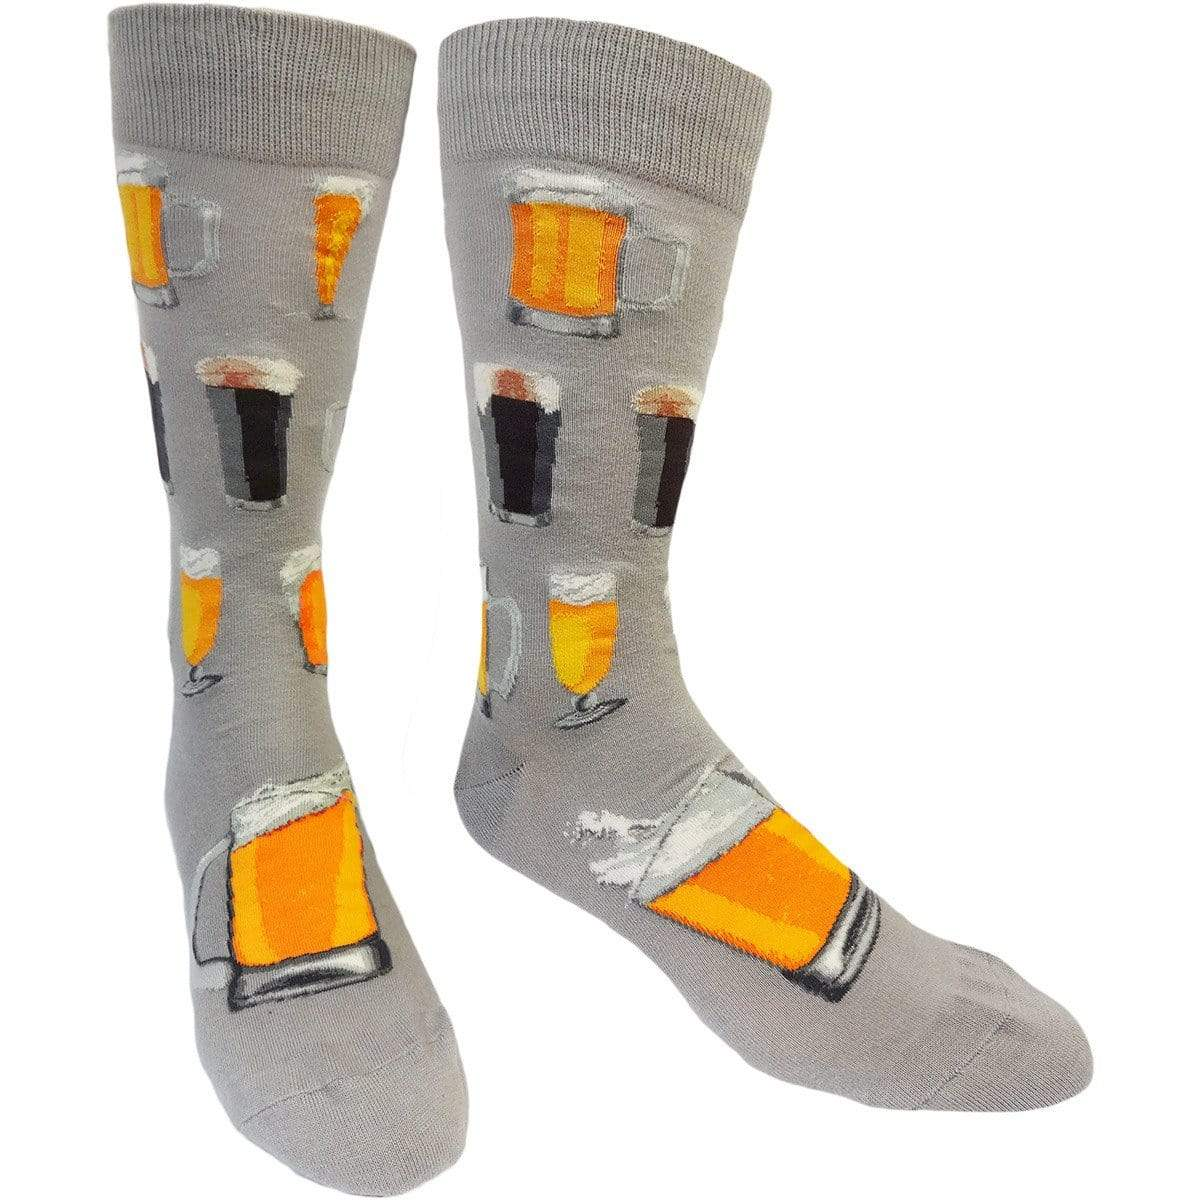 Craft Beer Socks Men's Crew Sock gray